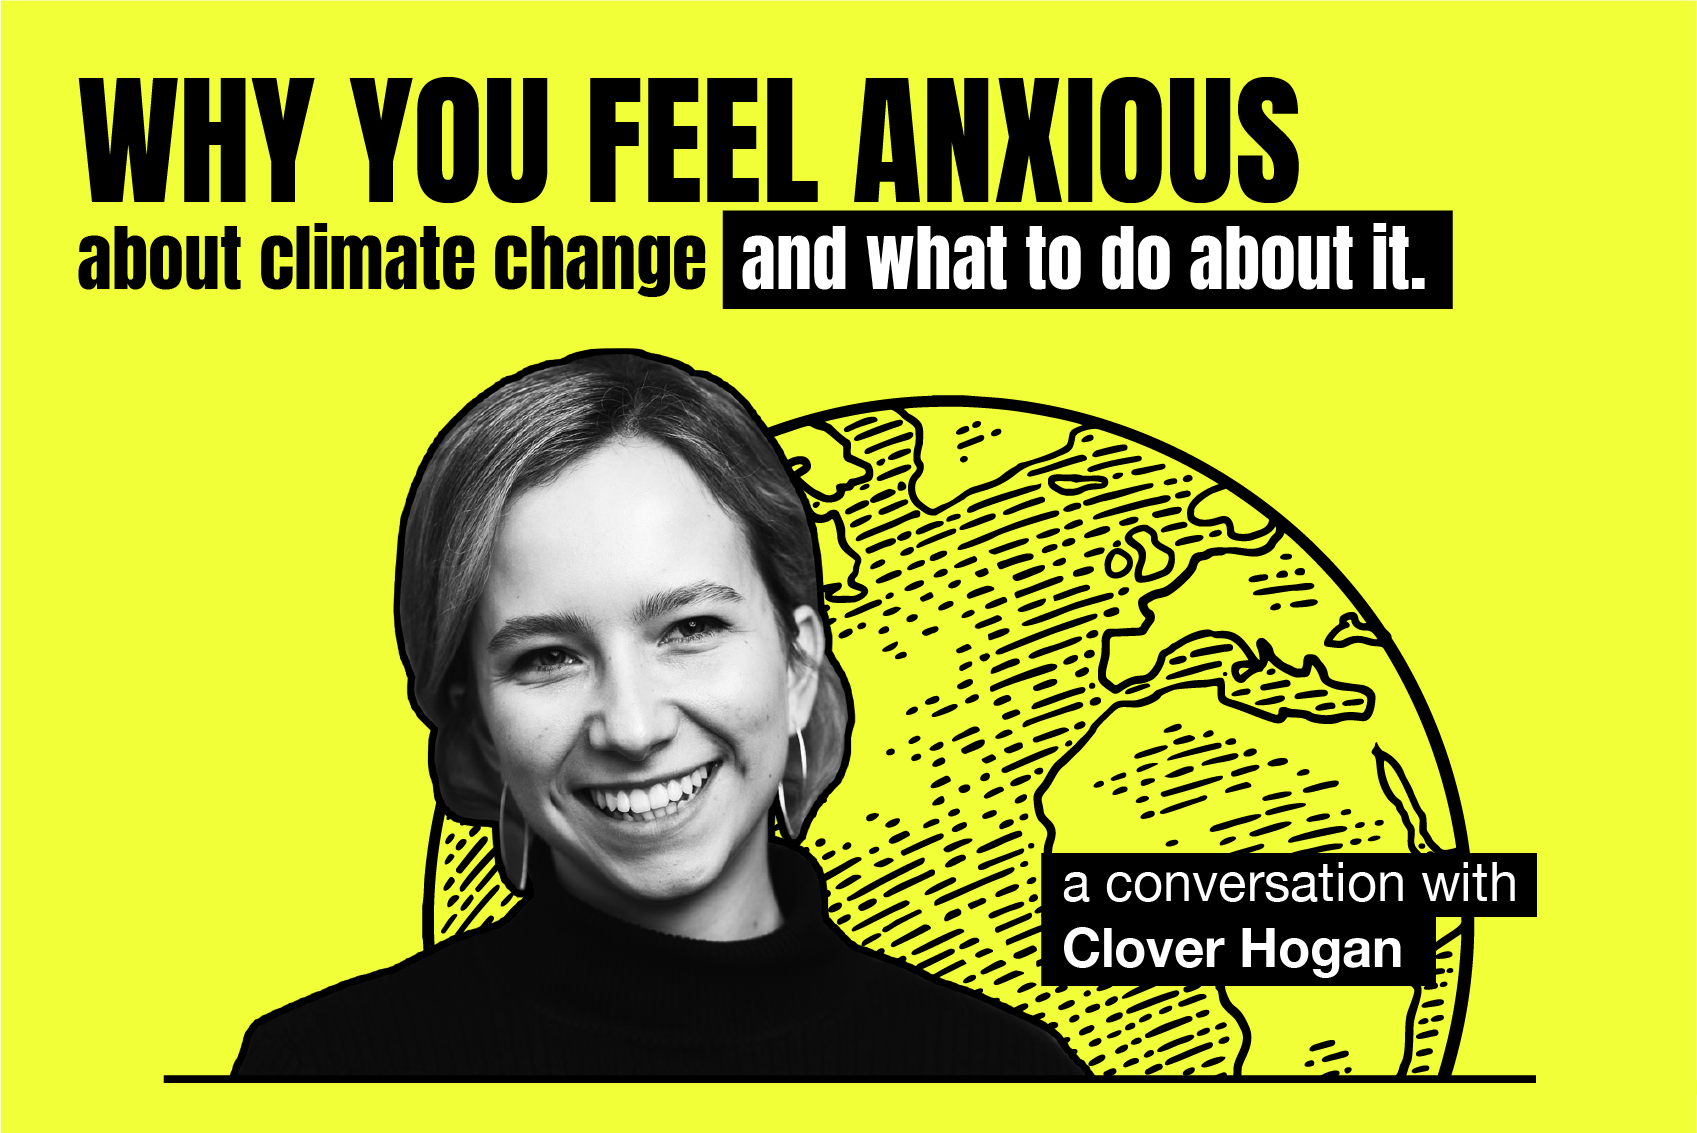 Climate Curious: Why you feel anxious about climate change (and what to do about it) - TEDxLondon